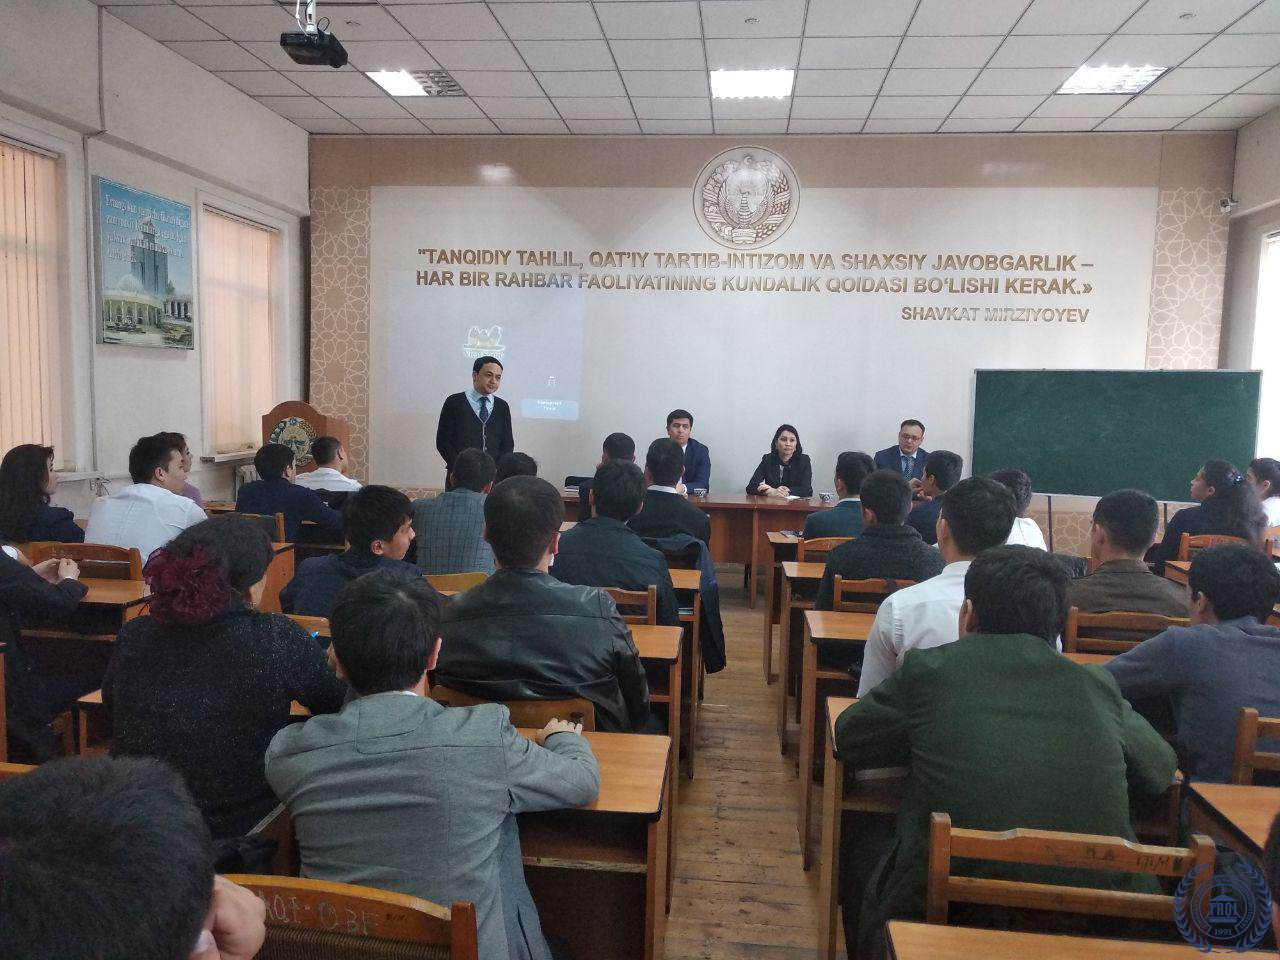 Promotion of ideas of religion and interethnic harmony